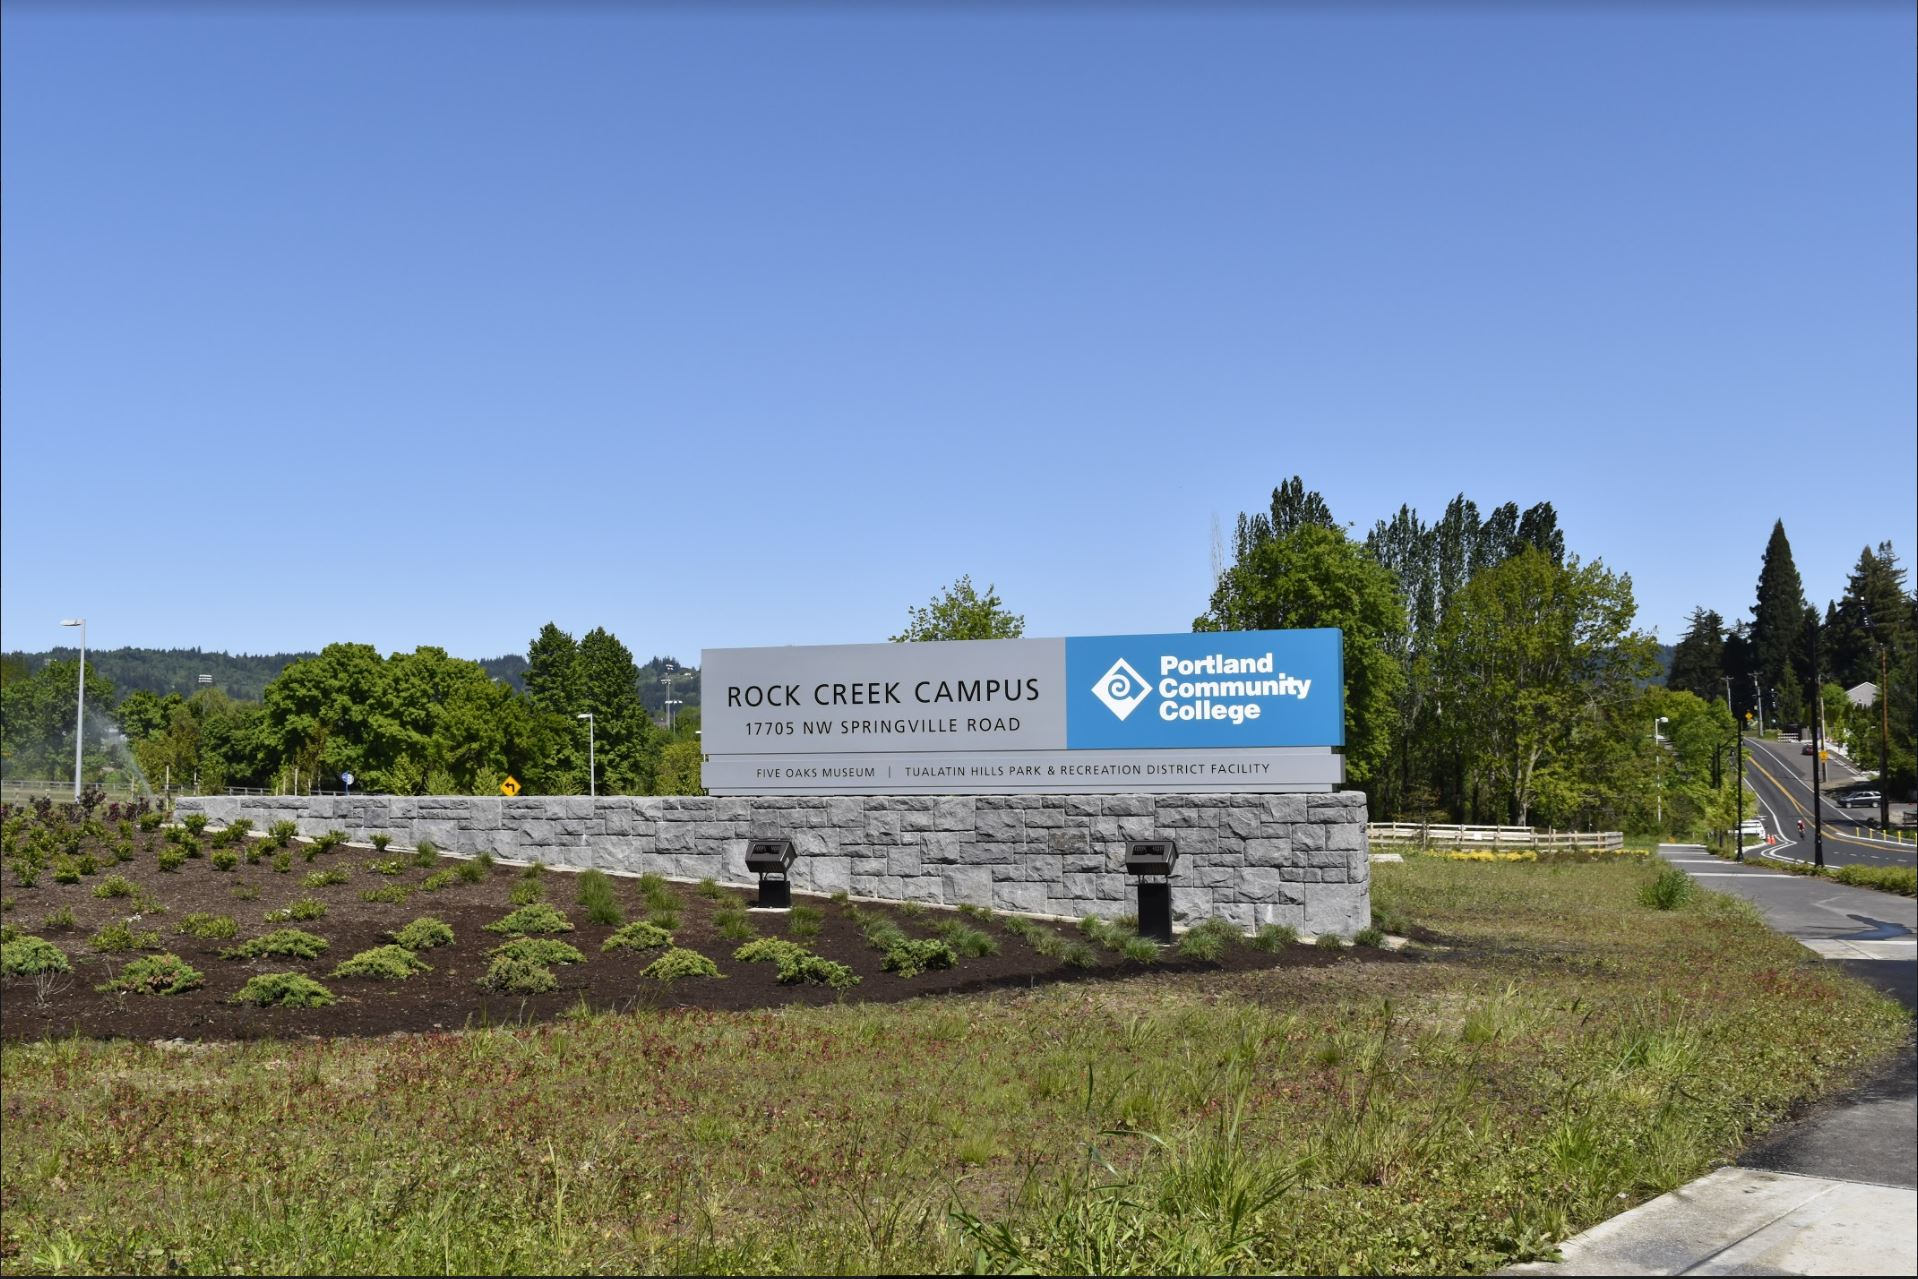 Rock Creek Campus monumental entry sign